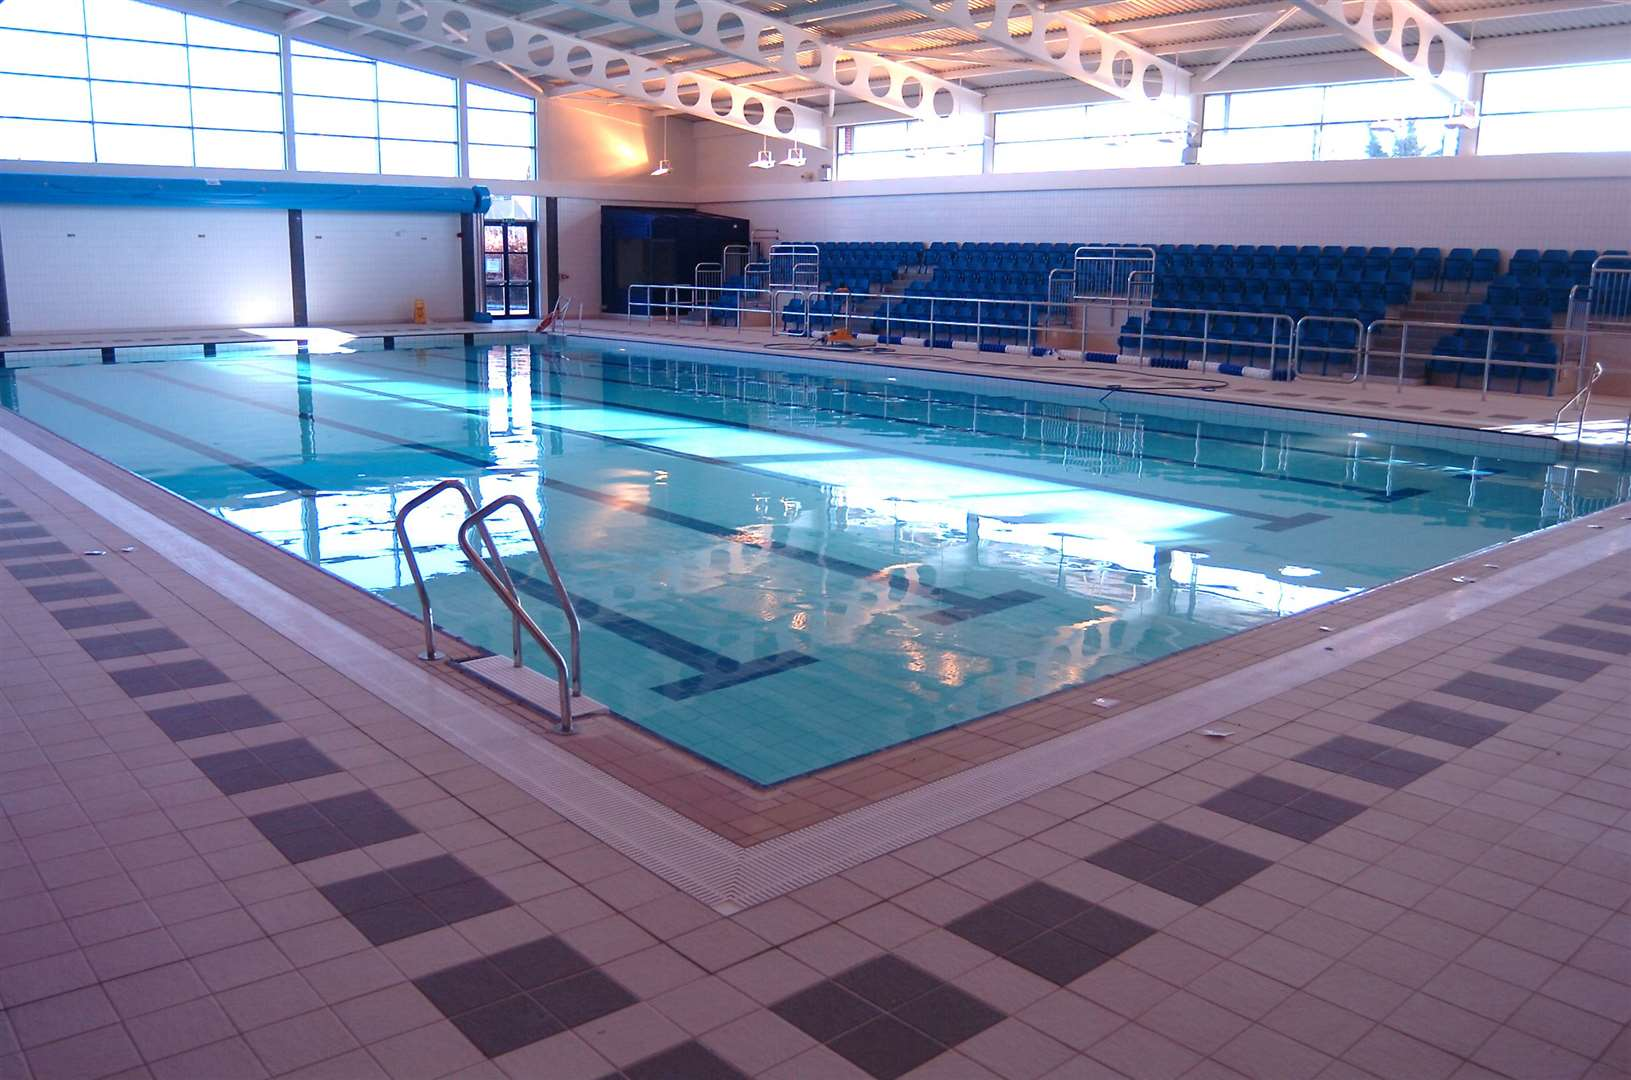 The leisure centre was open just over 10 years ago